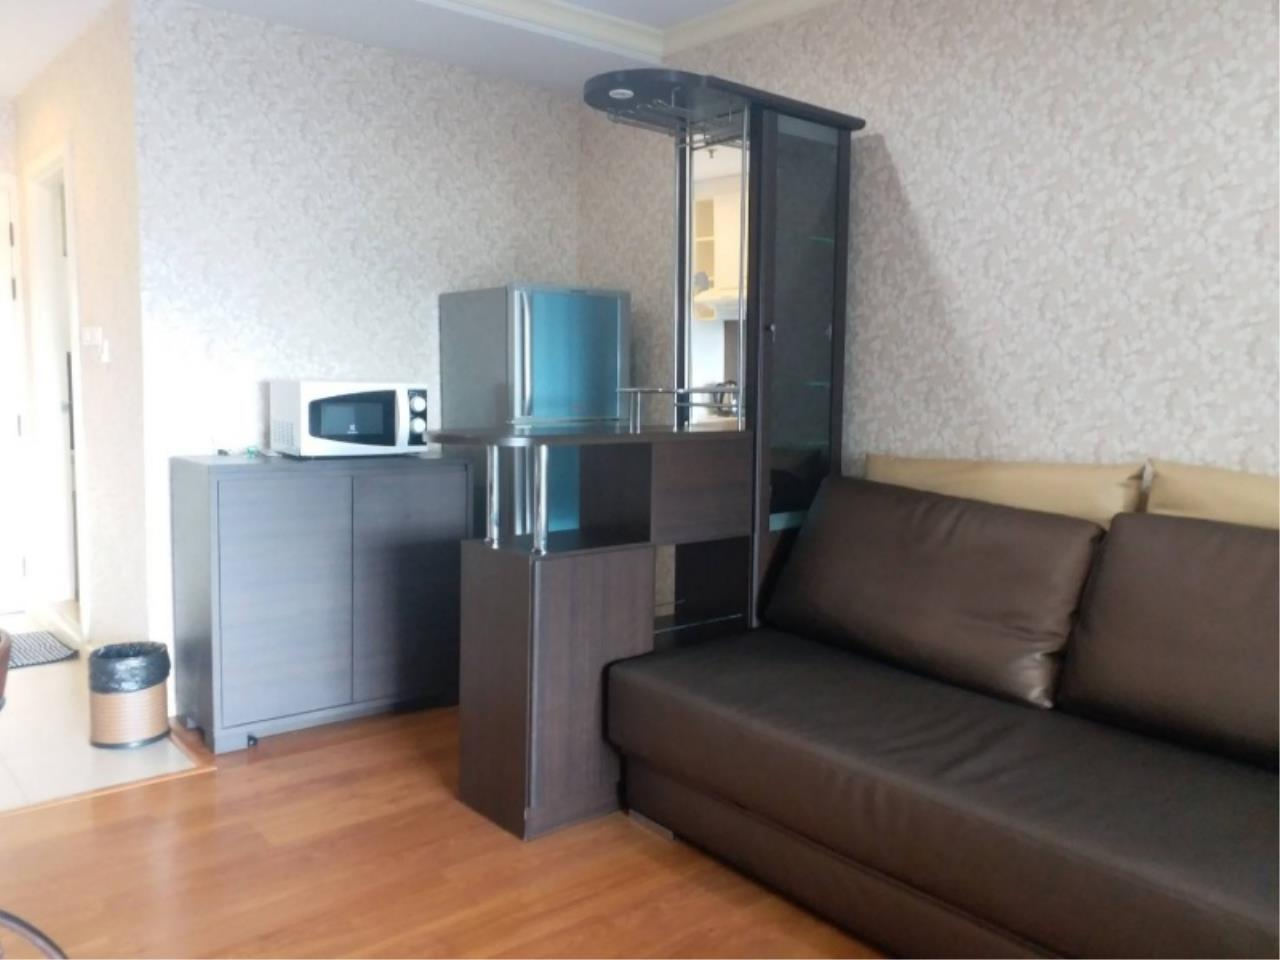 Century21 Skylux Agency's Grand Park View / Condo For Rent / 1 Bedroom / 42 SQM / BTS Asok / Bangkok 3